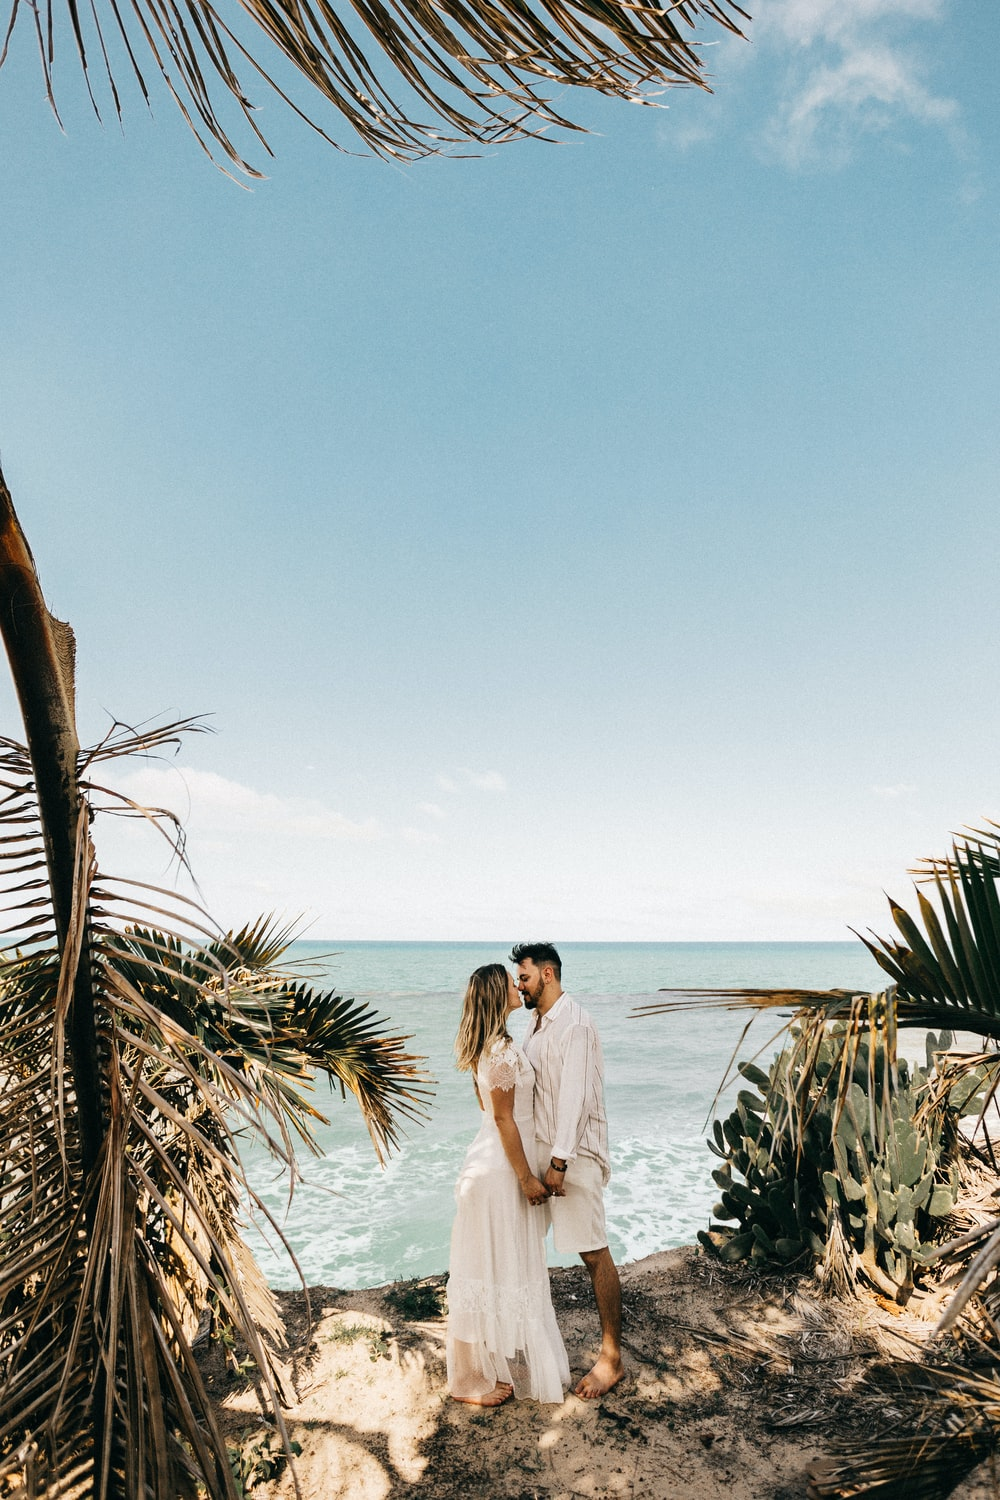 man and woman standing near coconut tree